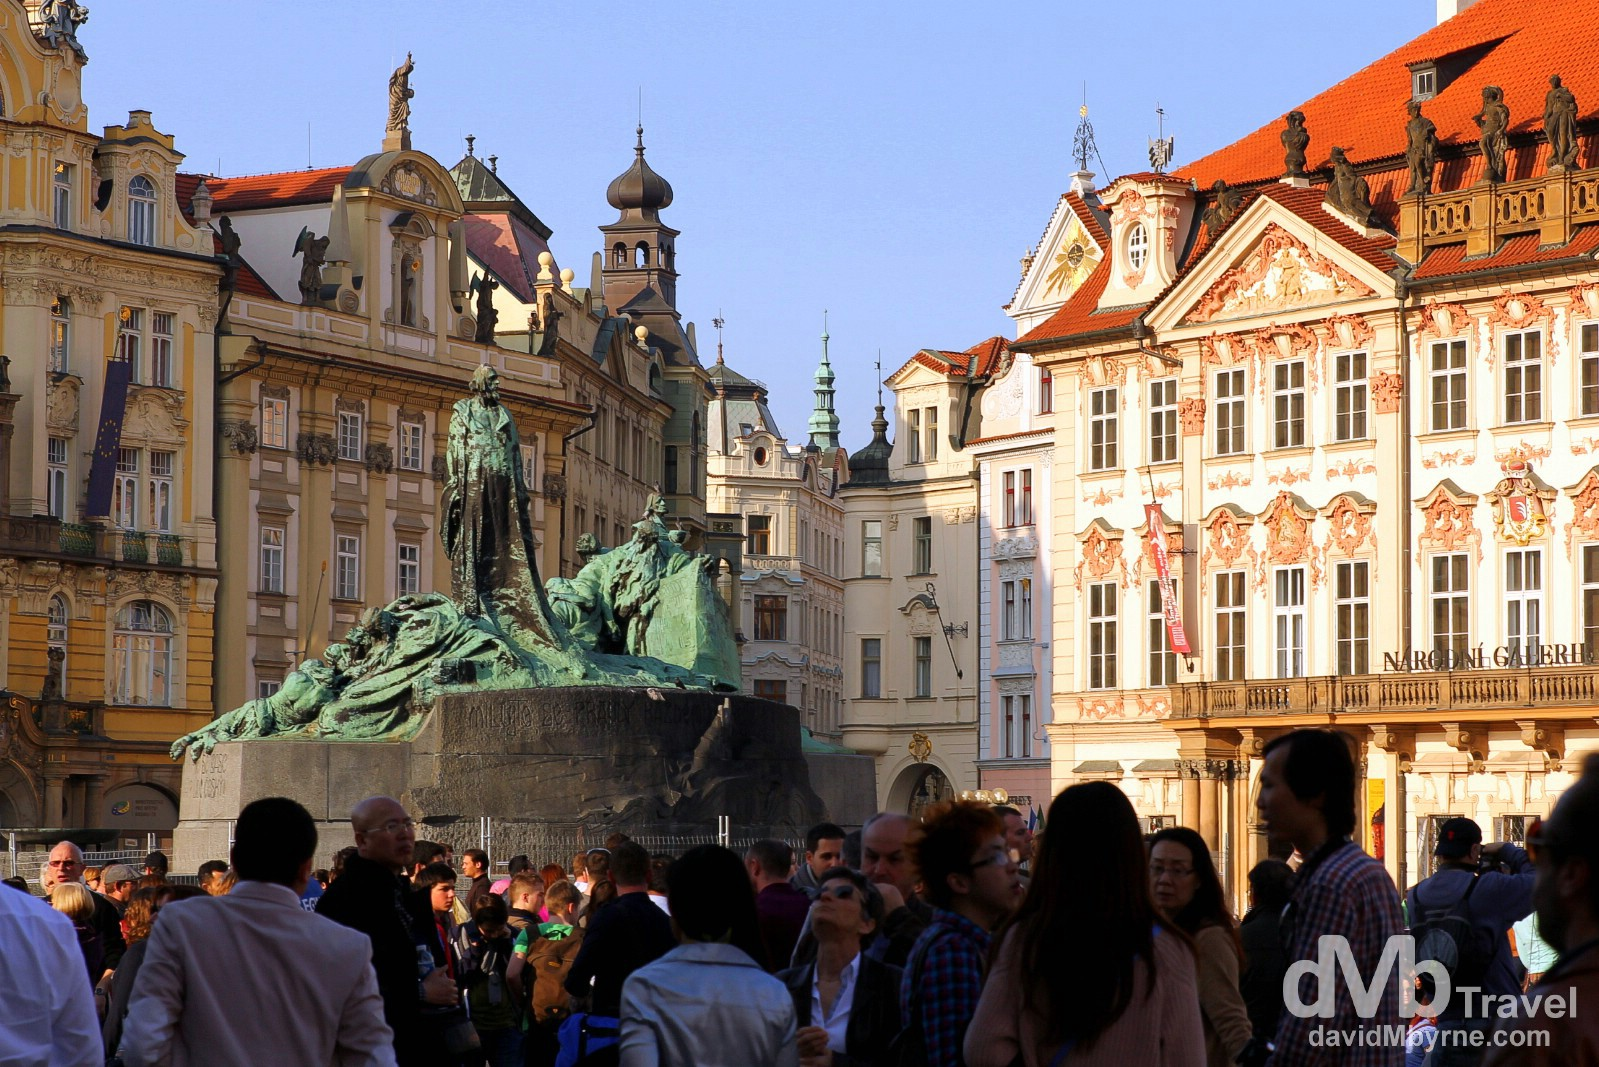 The Jan Hus statue, & loads of people, in Old Town Square, Prague, Czech Republic. March 30th, 2014.